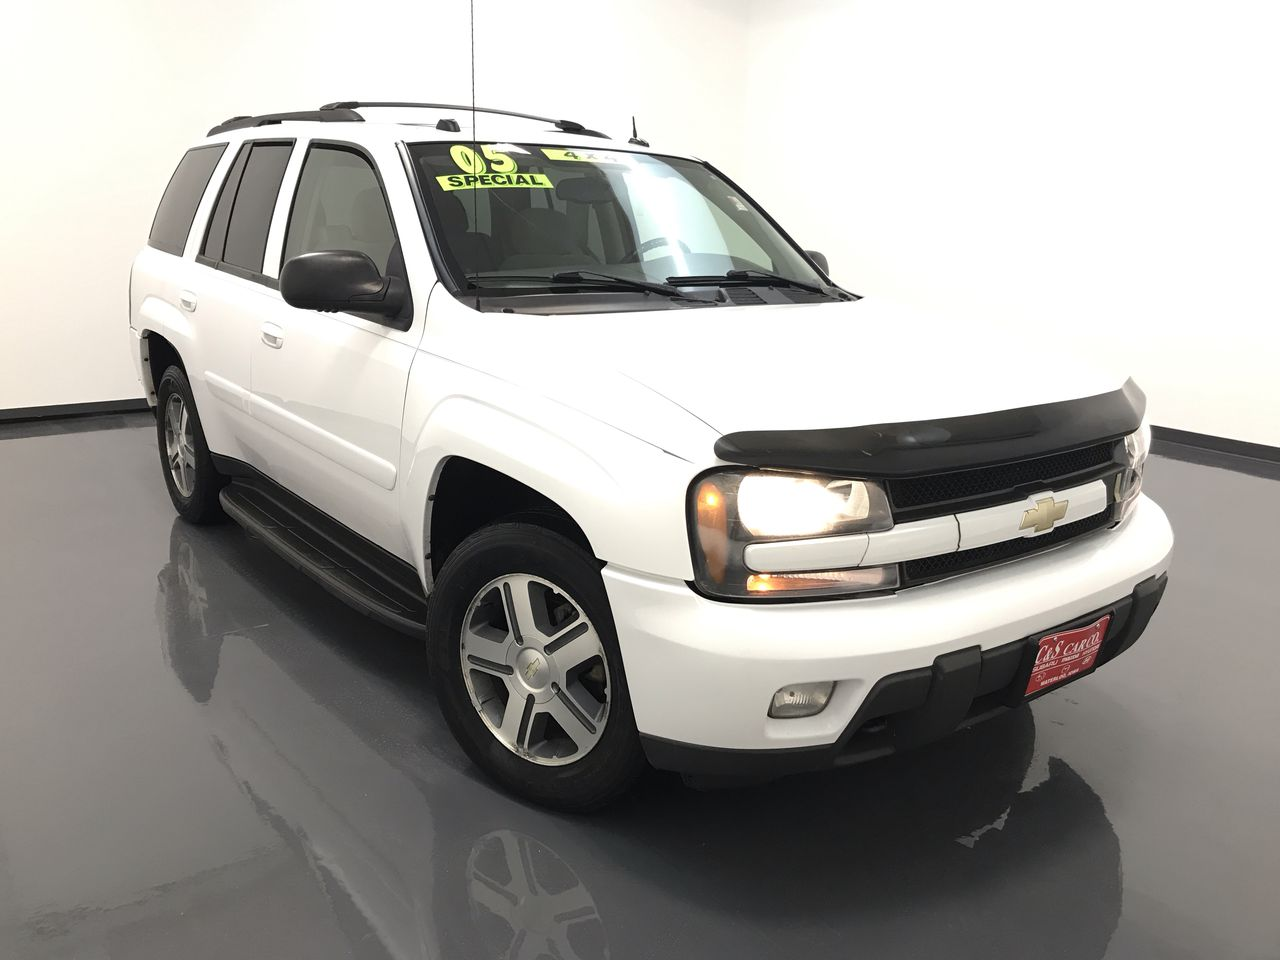 2005 Chevrolet TrailBlazer  - C & S Car Company